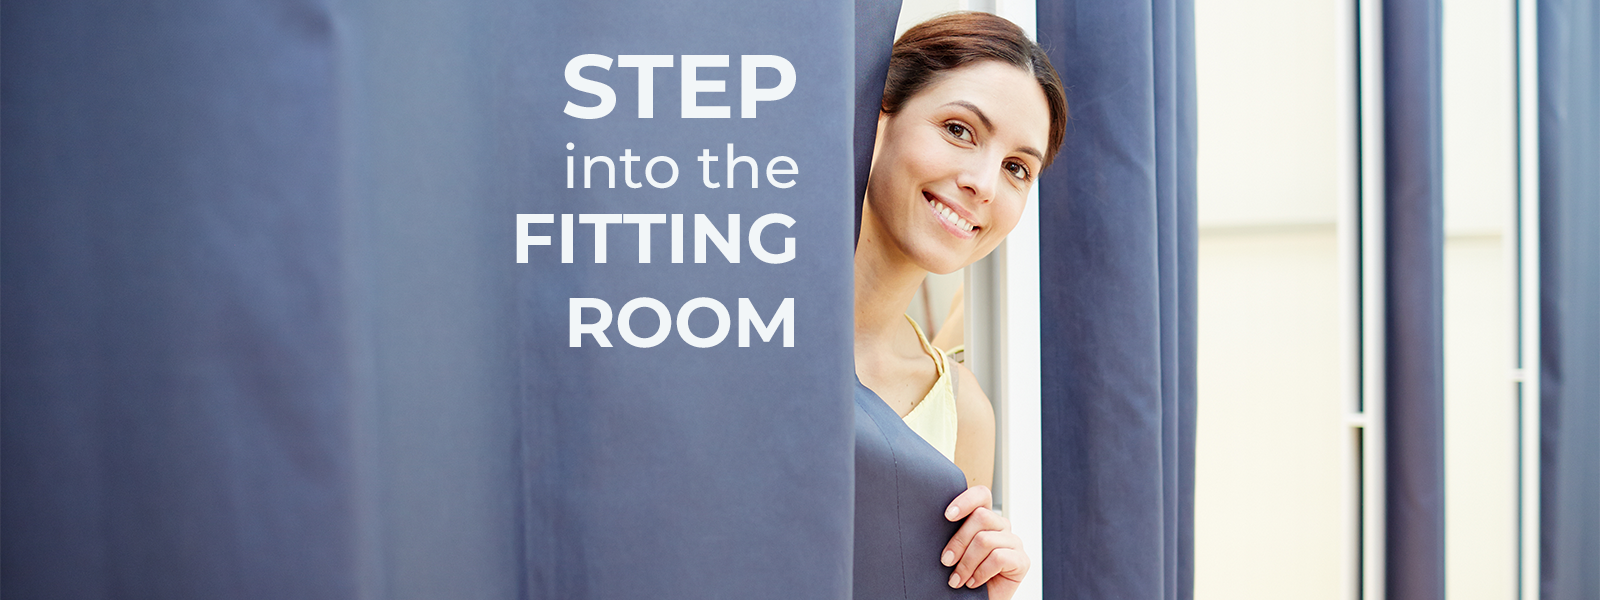 step into fitting room